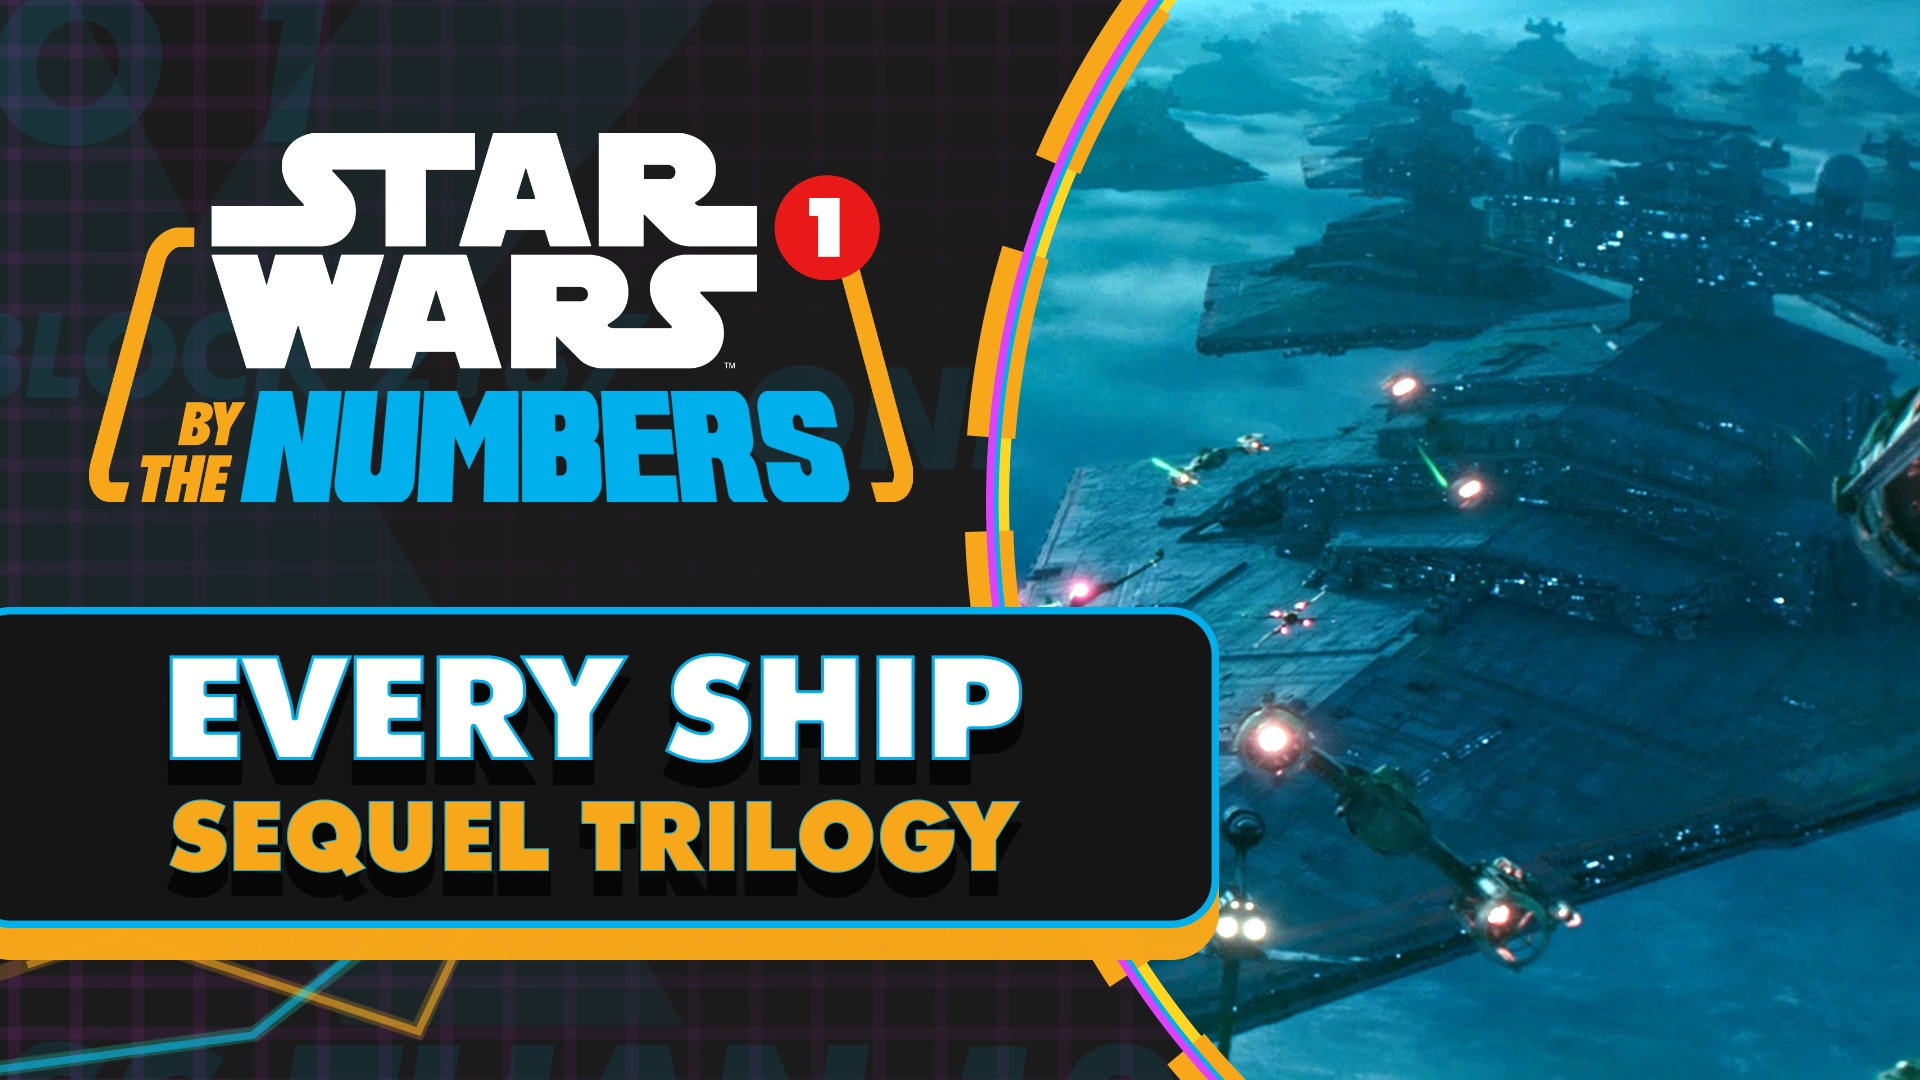 Every Ship in the Star Wars Sequel Trilogy | Star Wars By the Numbers